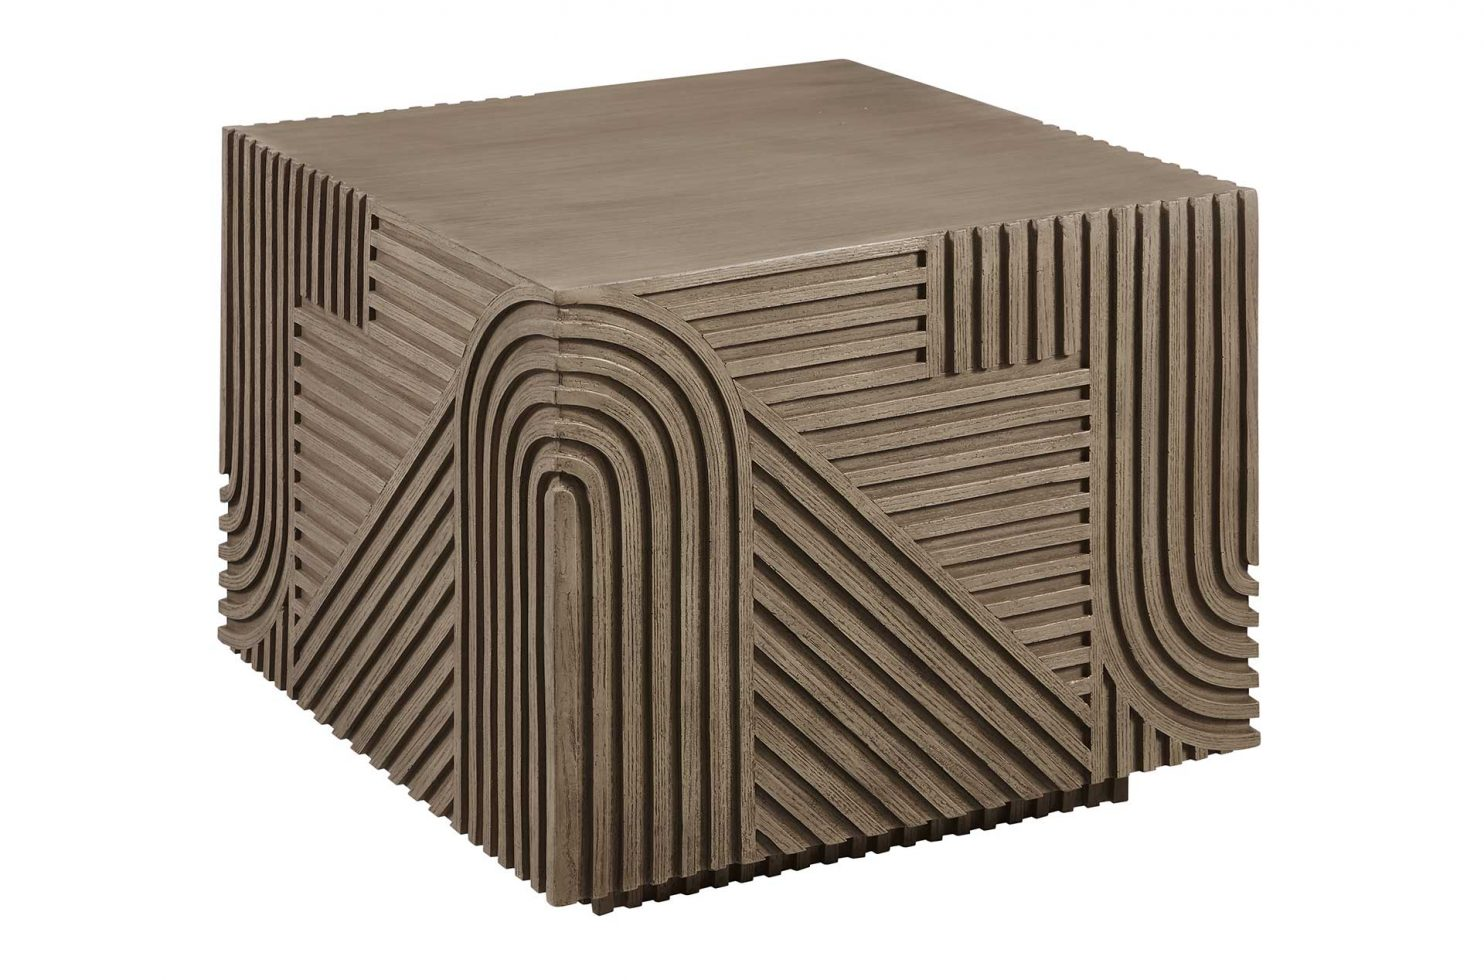 prov frp serenity energy textured square table S1568809116 1 3Q front above web